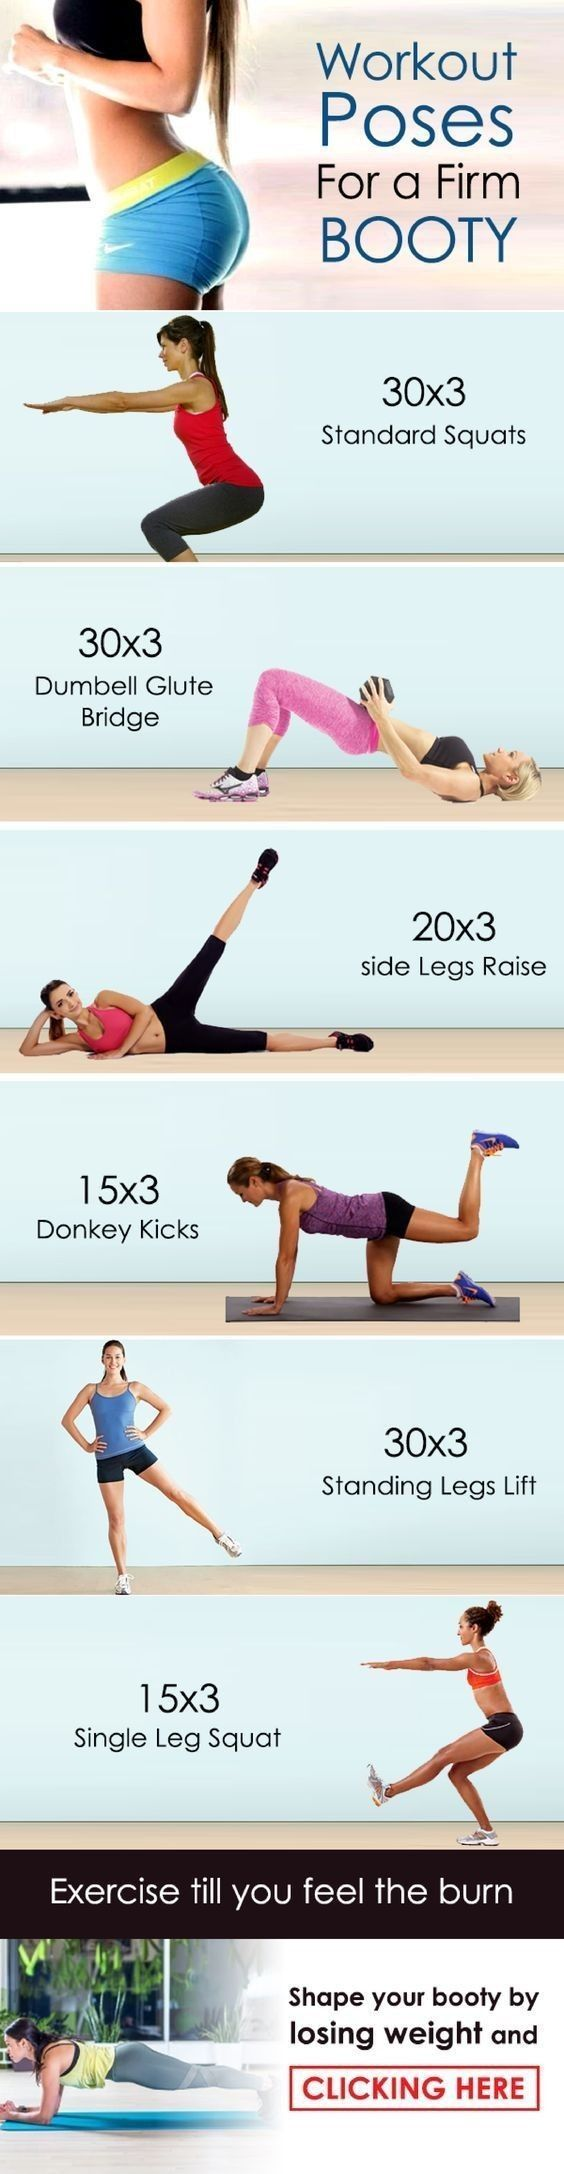 booty poses  | Posted By: NewHowToLoseBellyFat.com